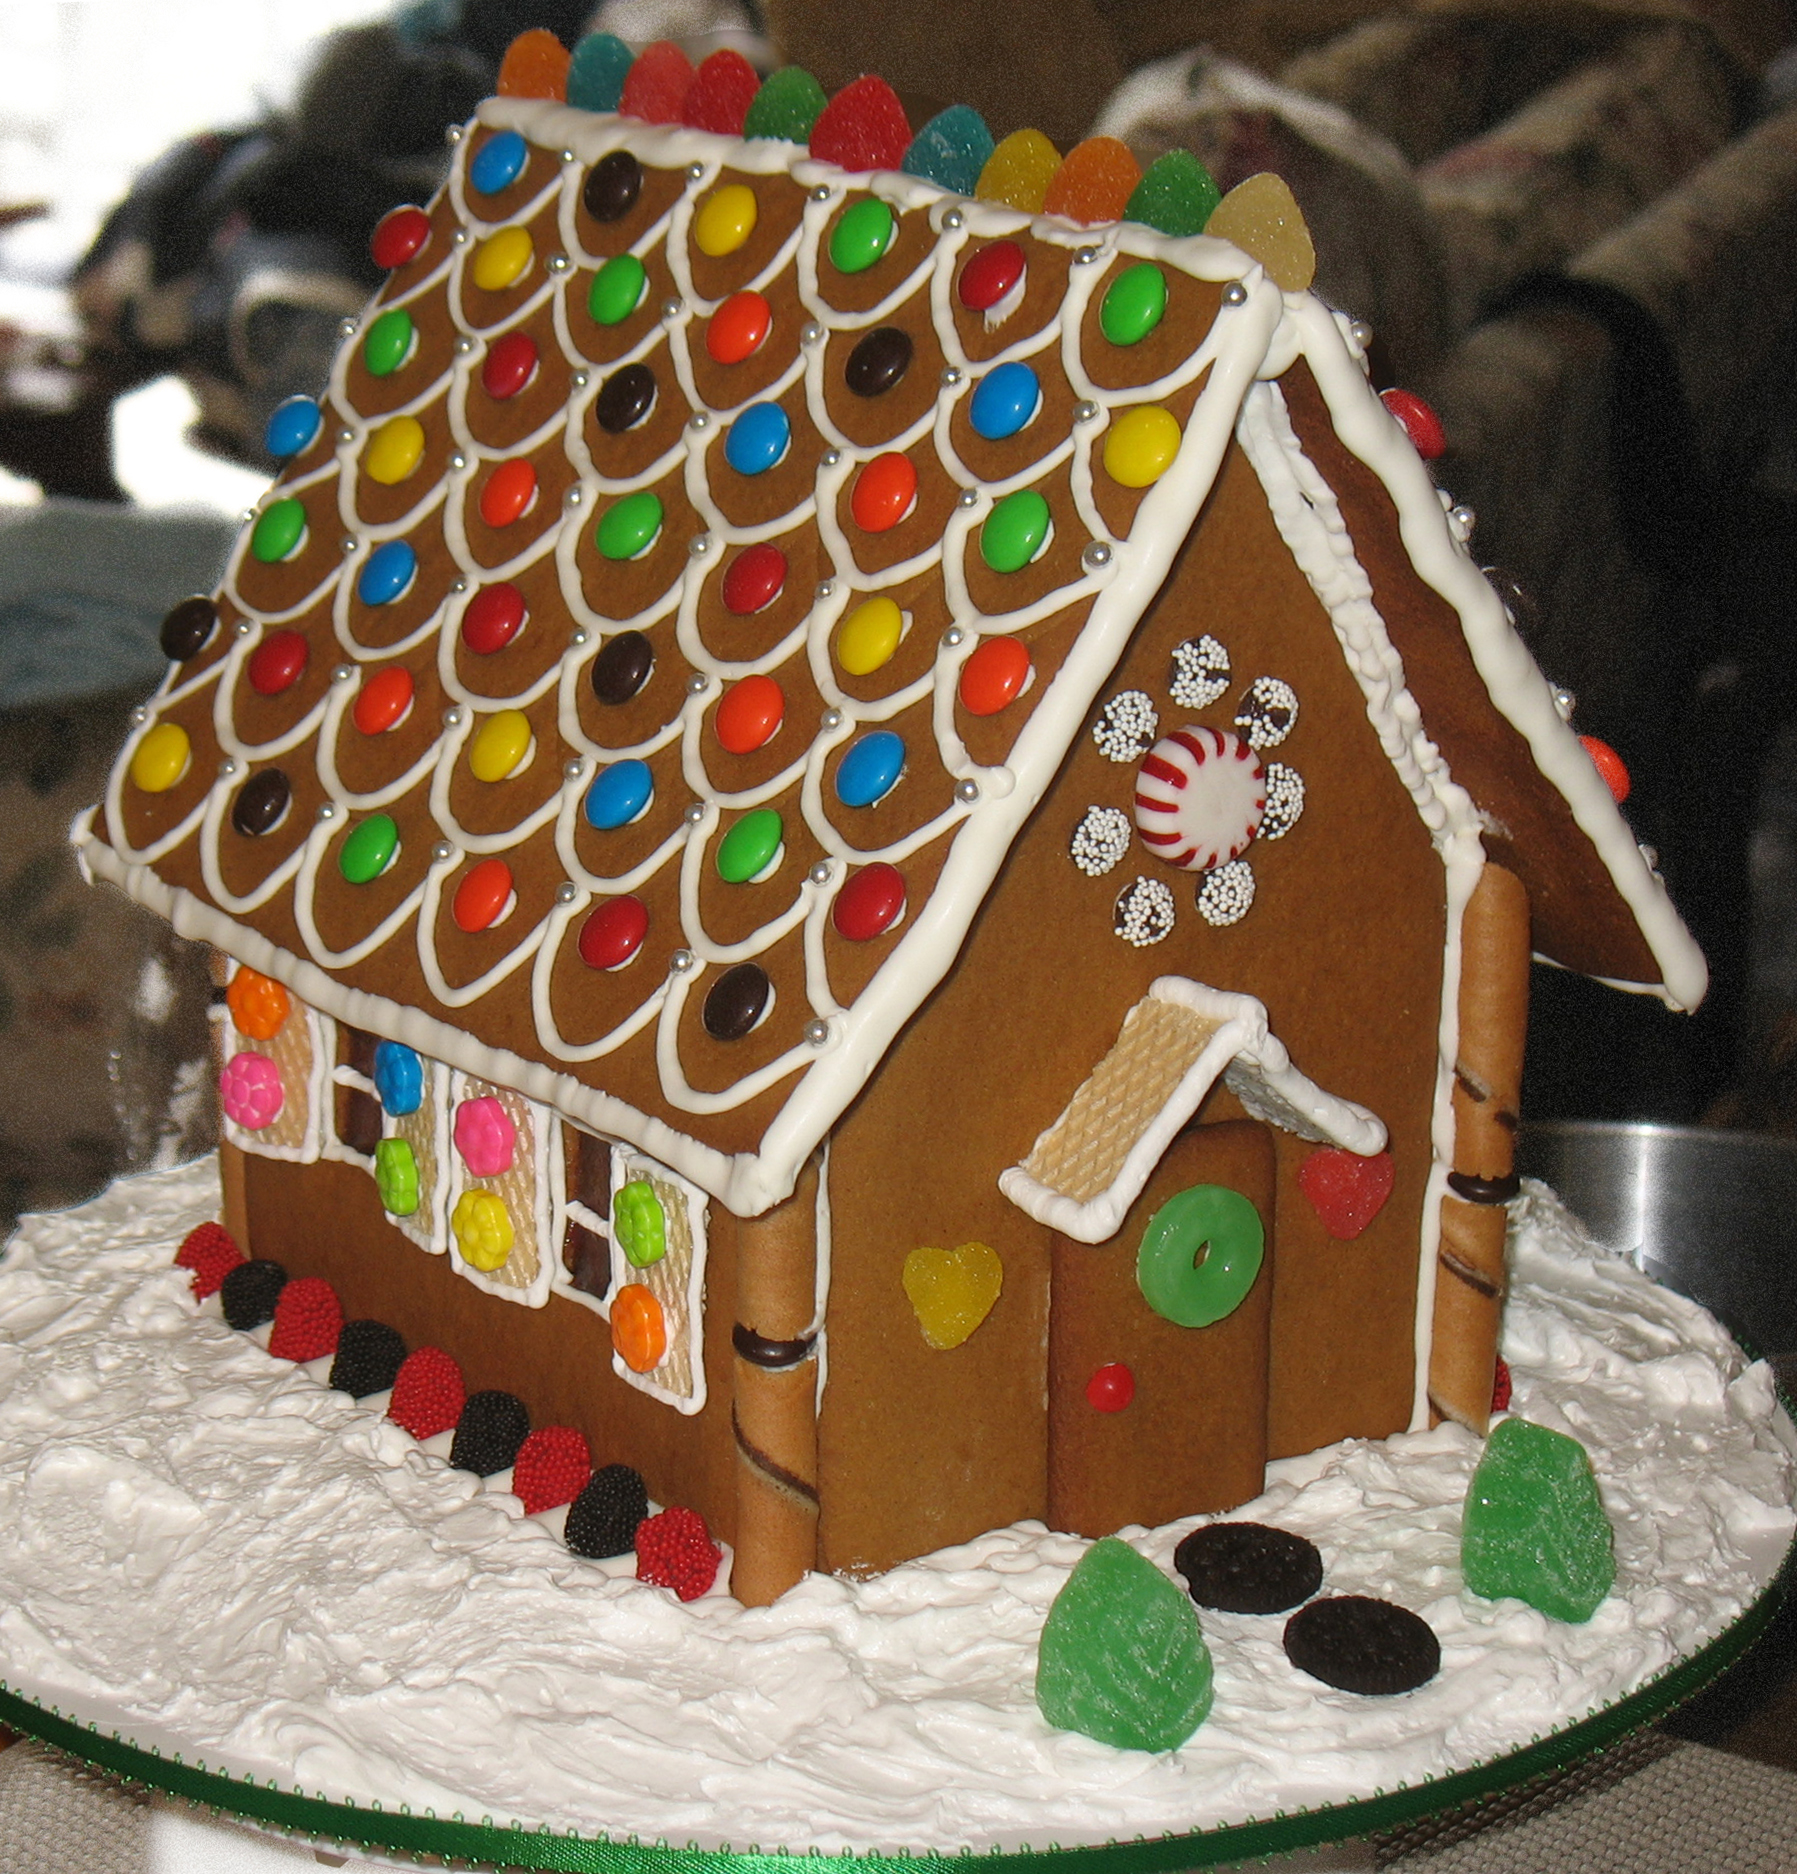 The Gingerbread House Centerpiece